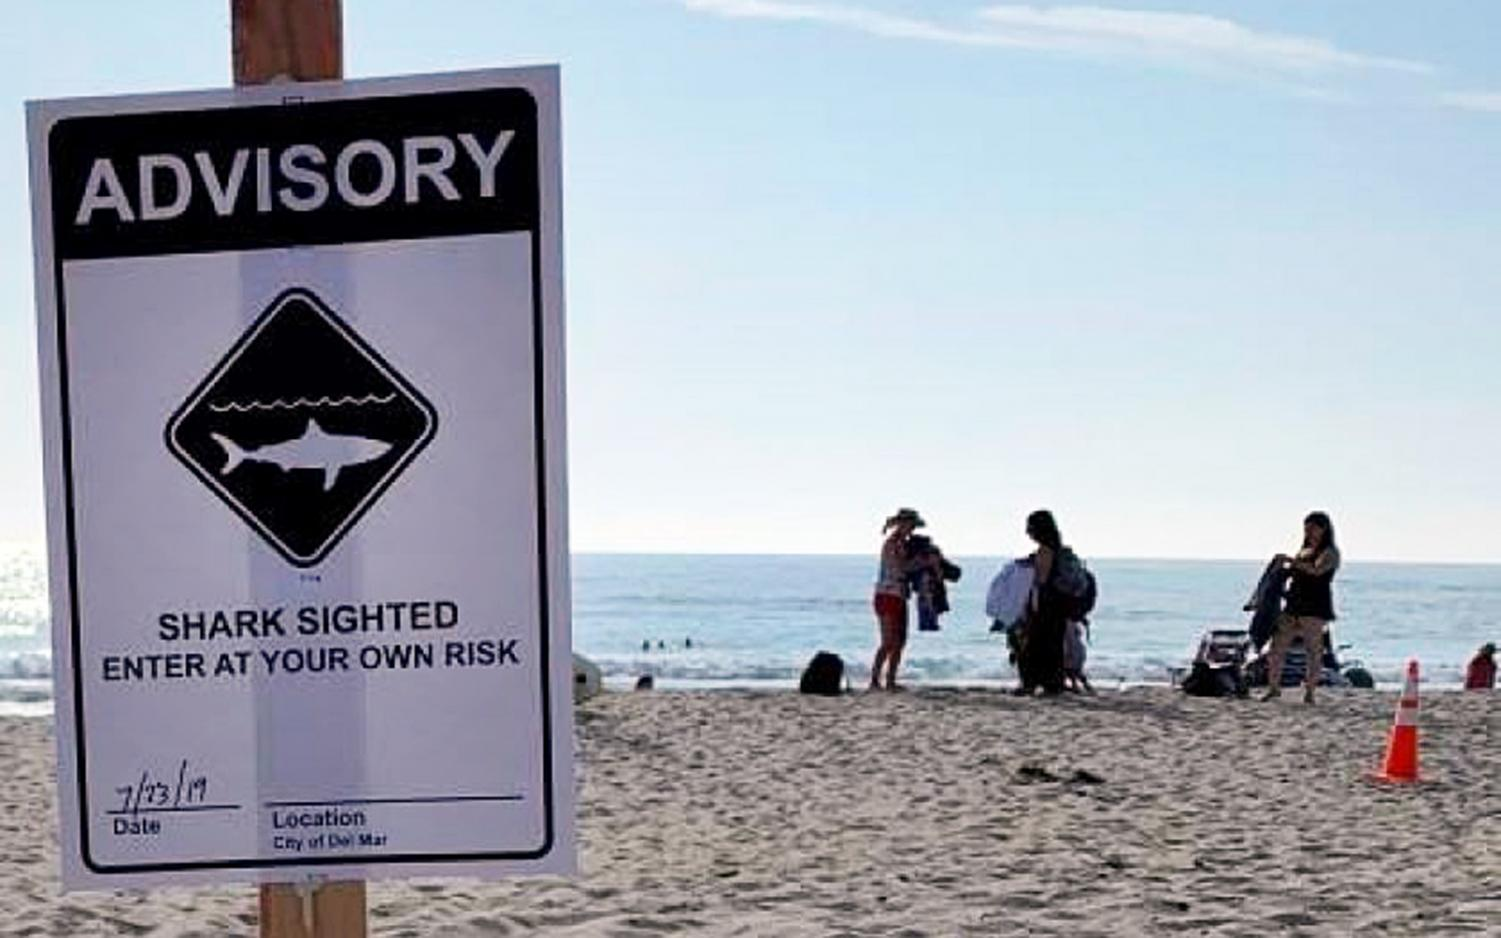 The city of Del Mar posted a shark advisory at its beaches July 23. Encinitas followed with its own advisory July 24. (Del Mar city photo)